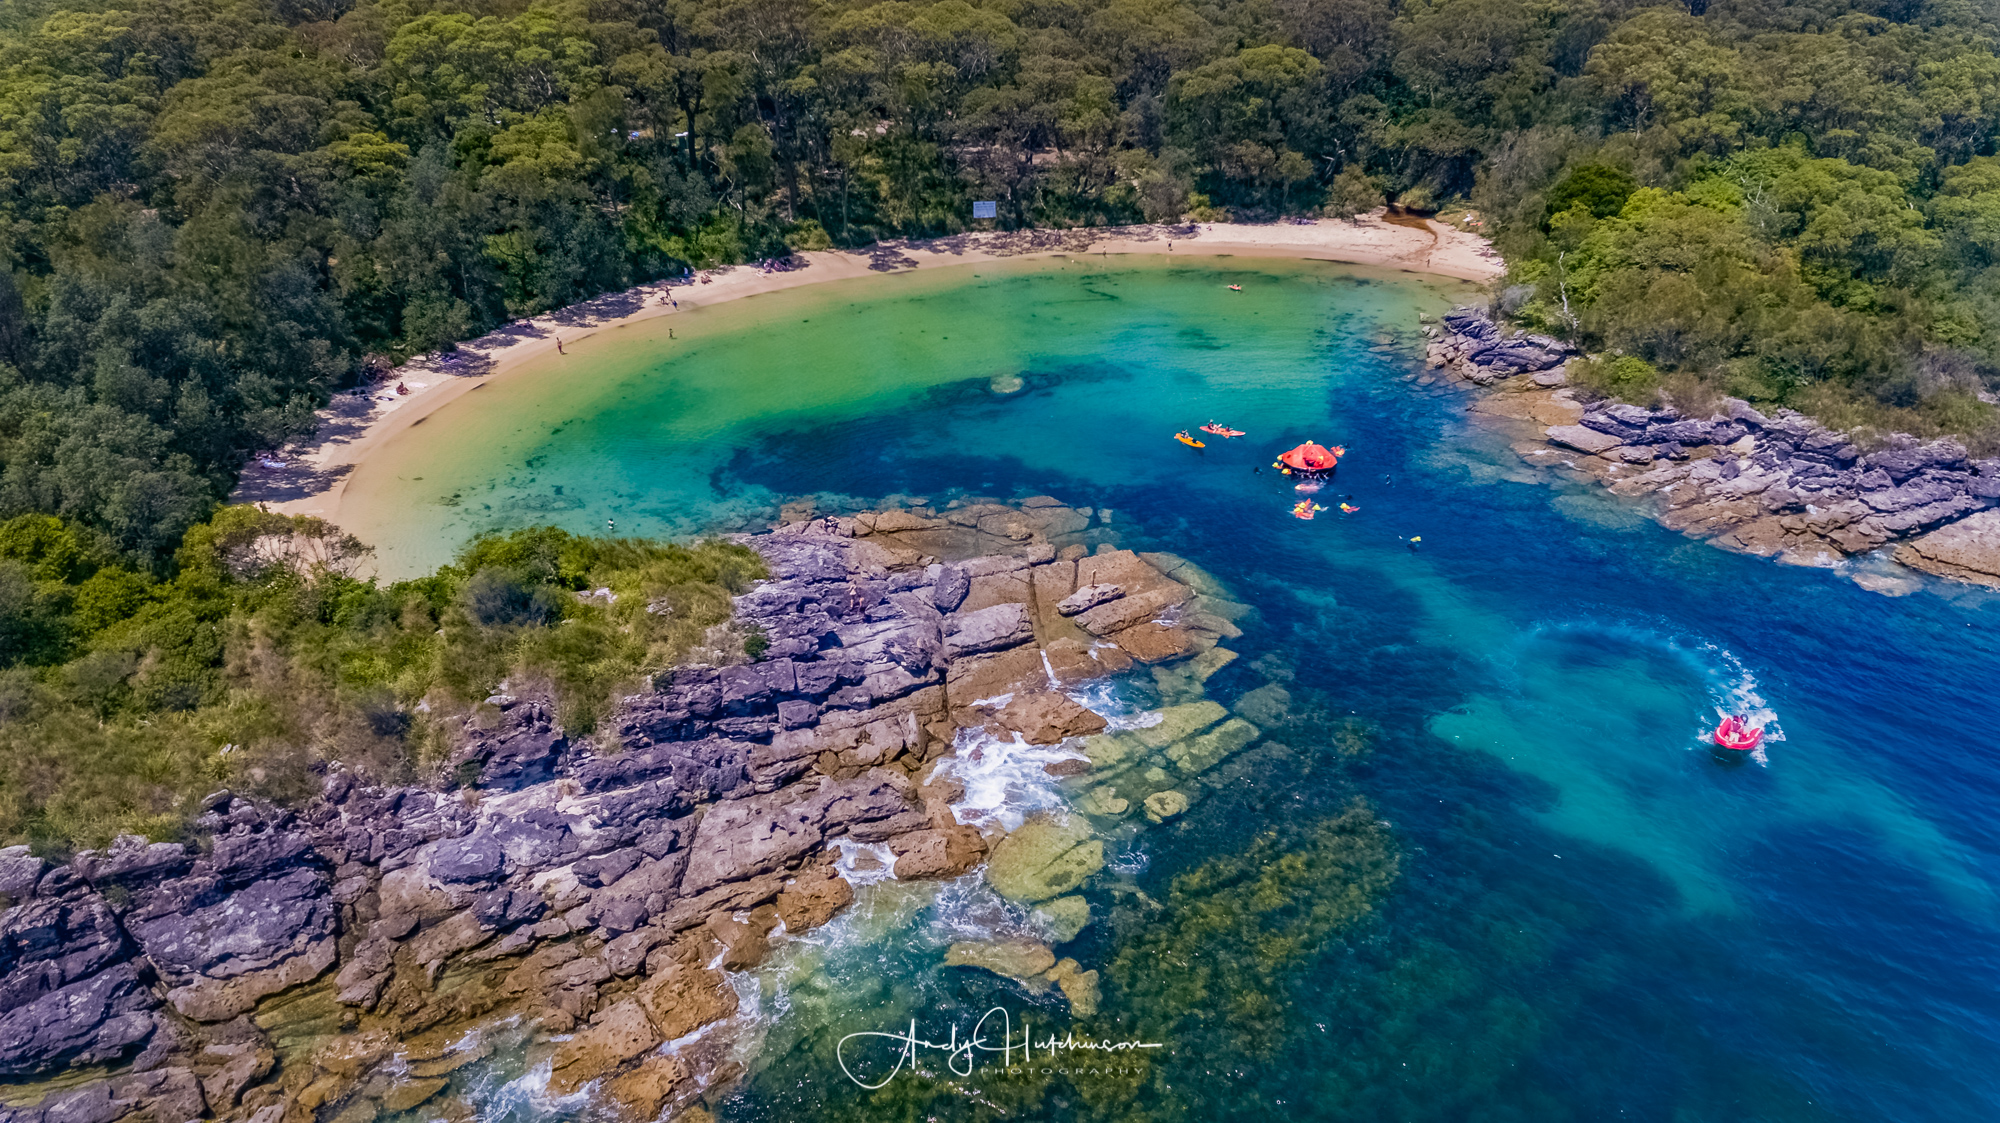 Beautiful Honeymoon Beach is a stunning little bay located in the Beecroft Weapons Range to the north of Jervis Bay. It can get super busy at peak times so get down early to snag yourself a bit of space on its immaculate sand.